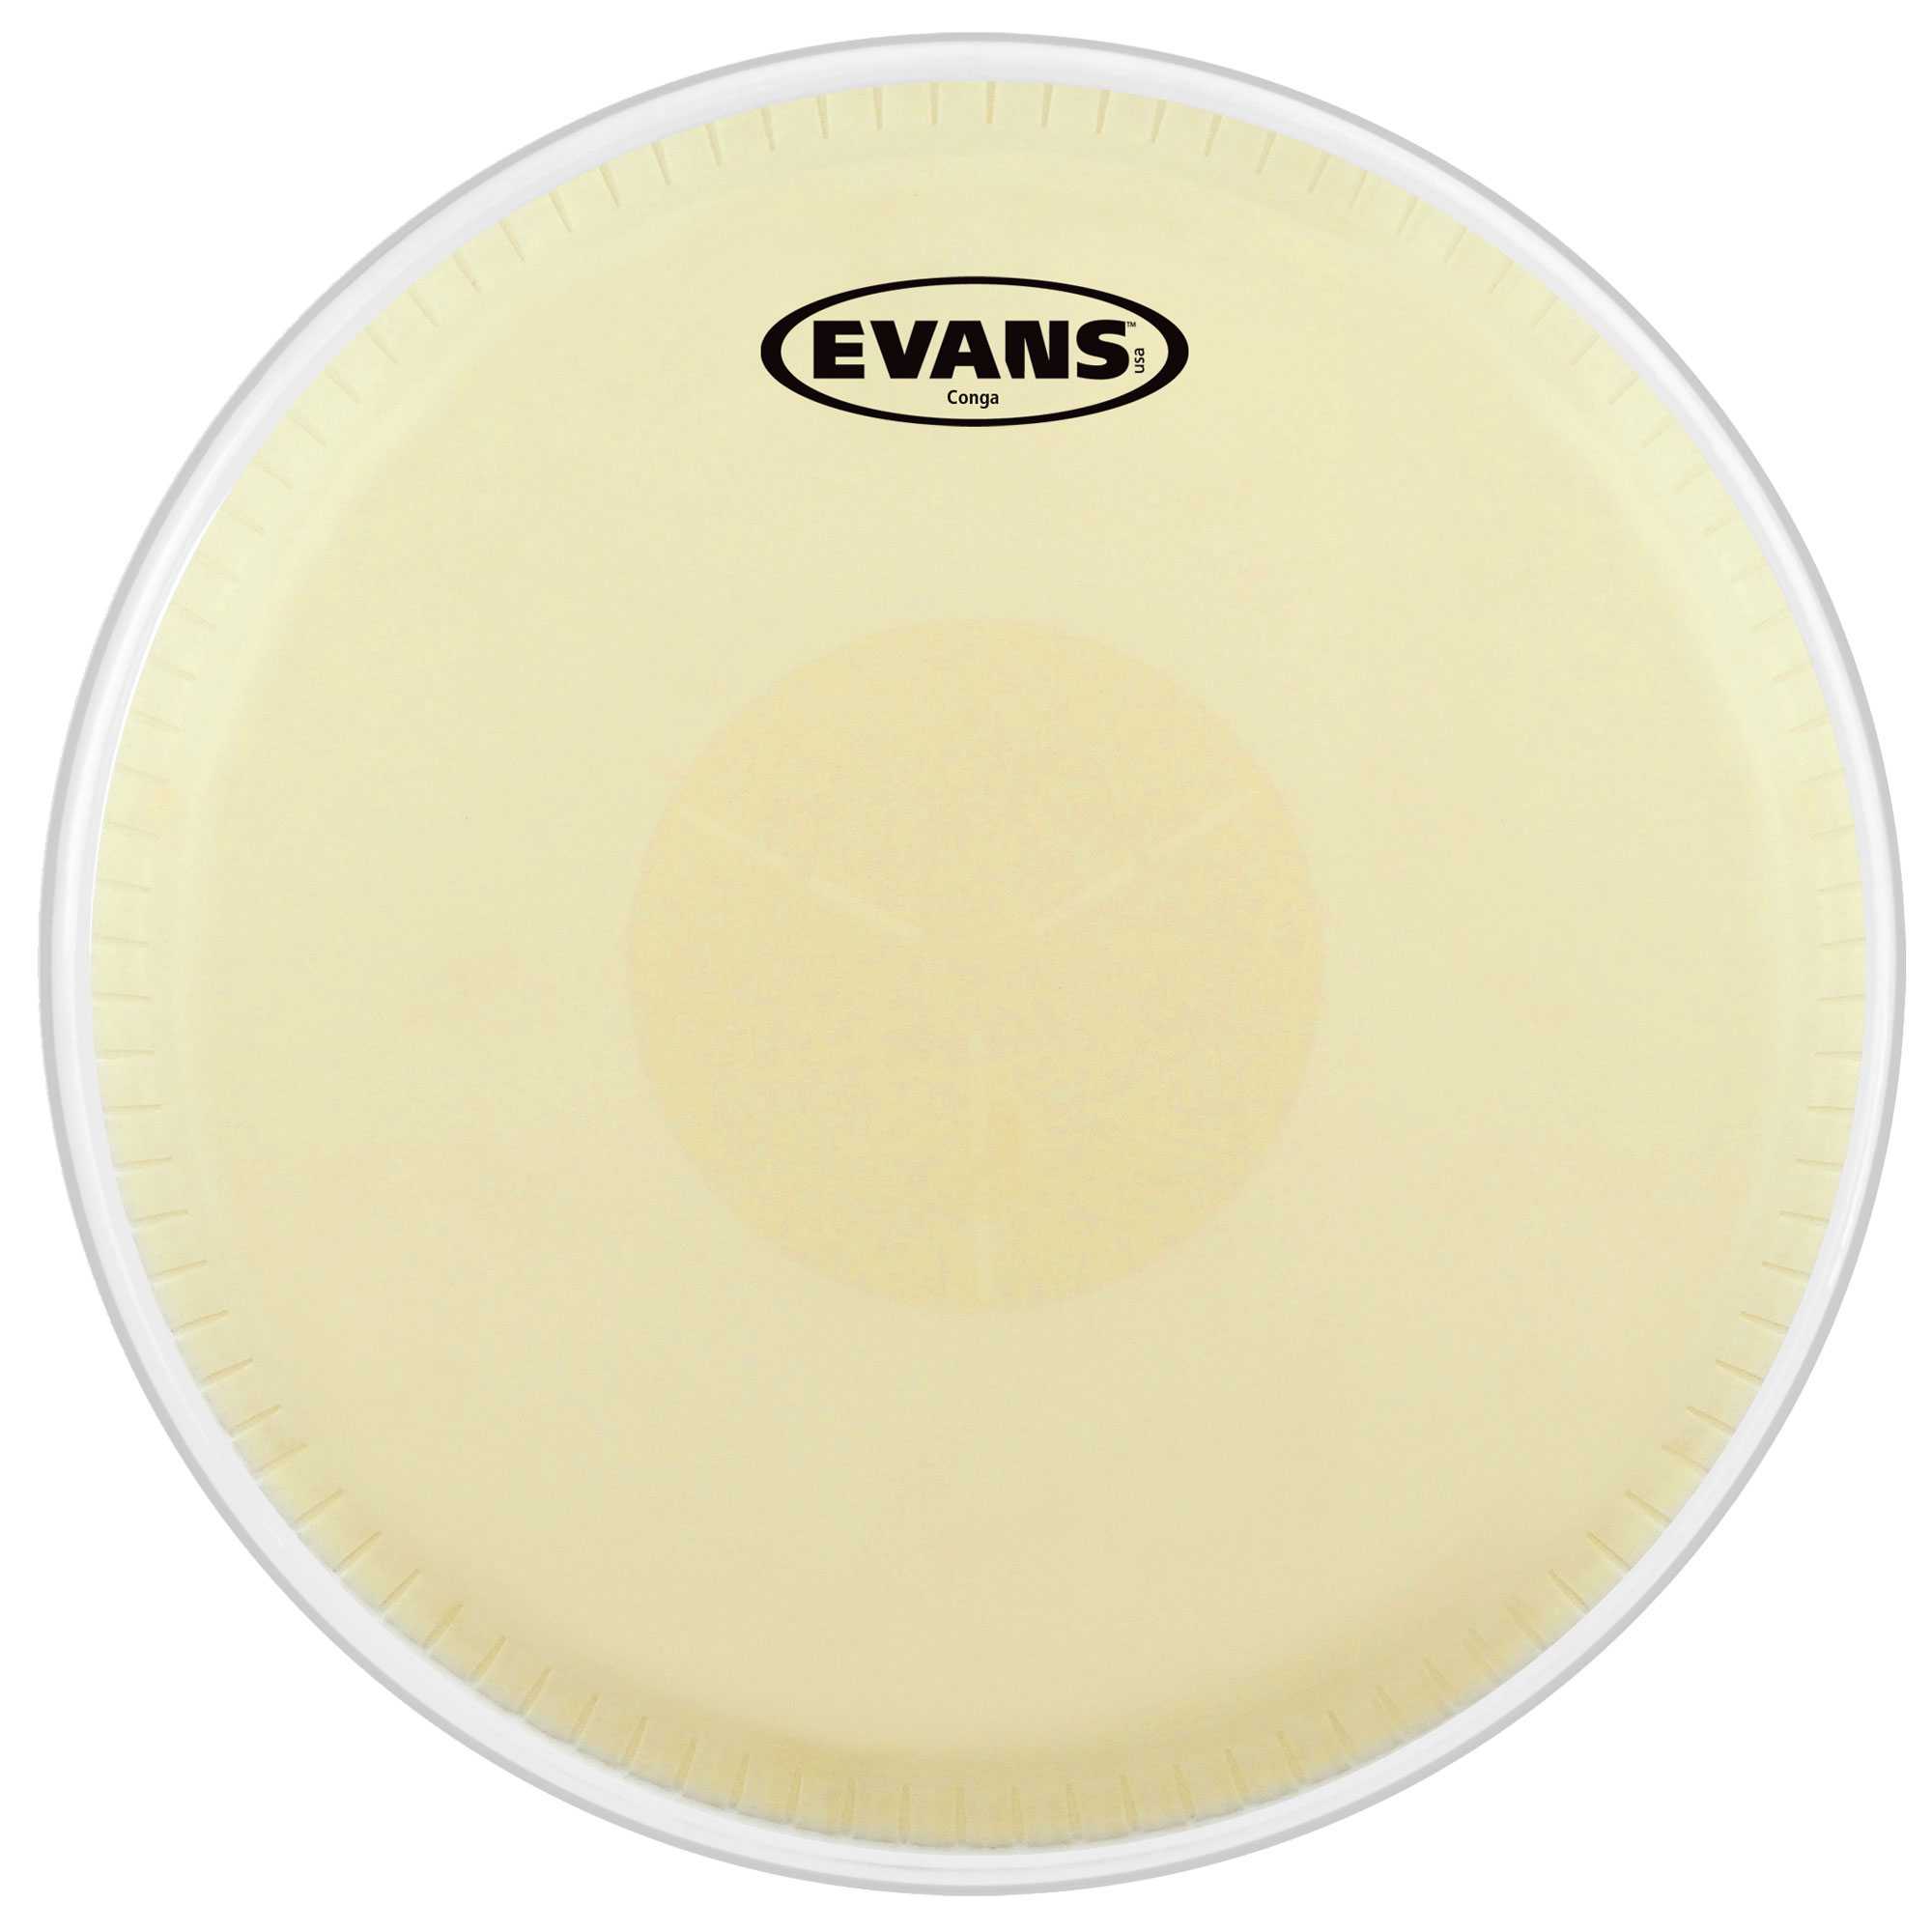 "Evans 11.75"" Tri-Center Conga Head"